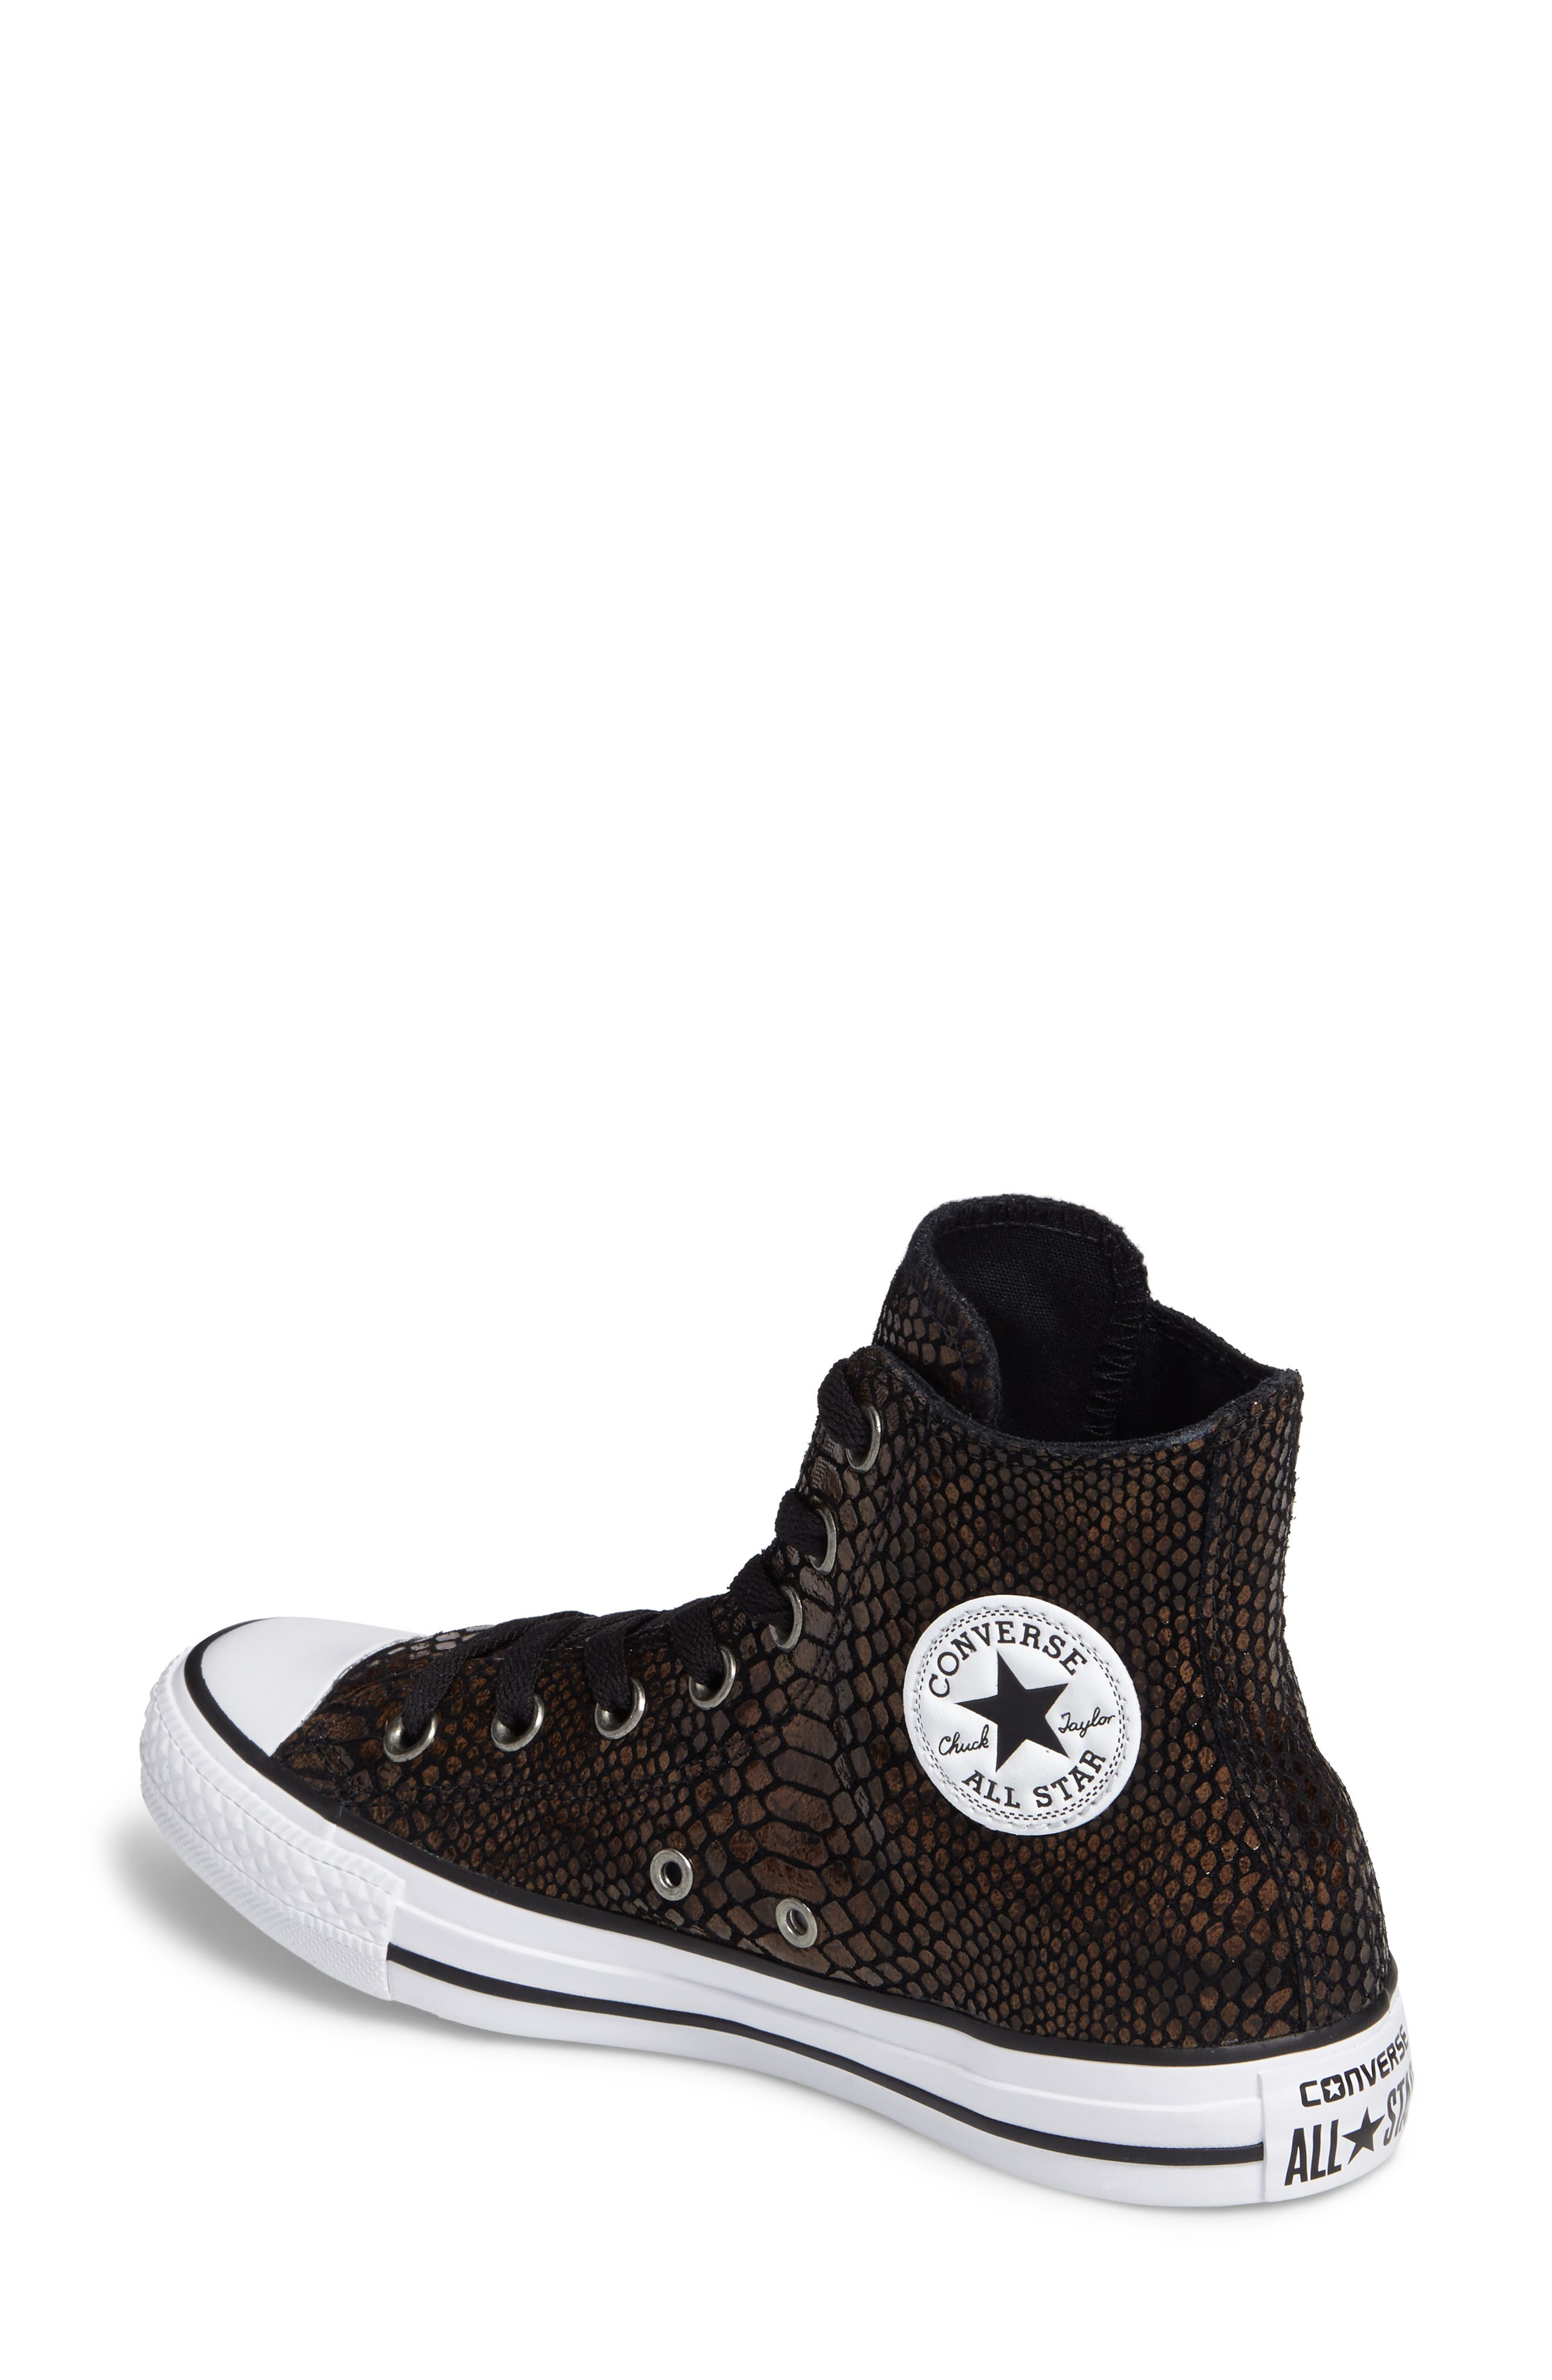 Alternate Image 2  - Converse Chuck Taylor® All Star® Snake Embossed High Top Sneaker (Women)